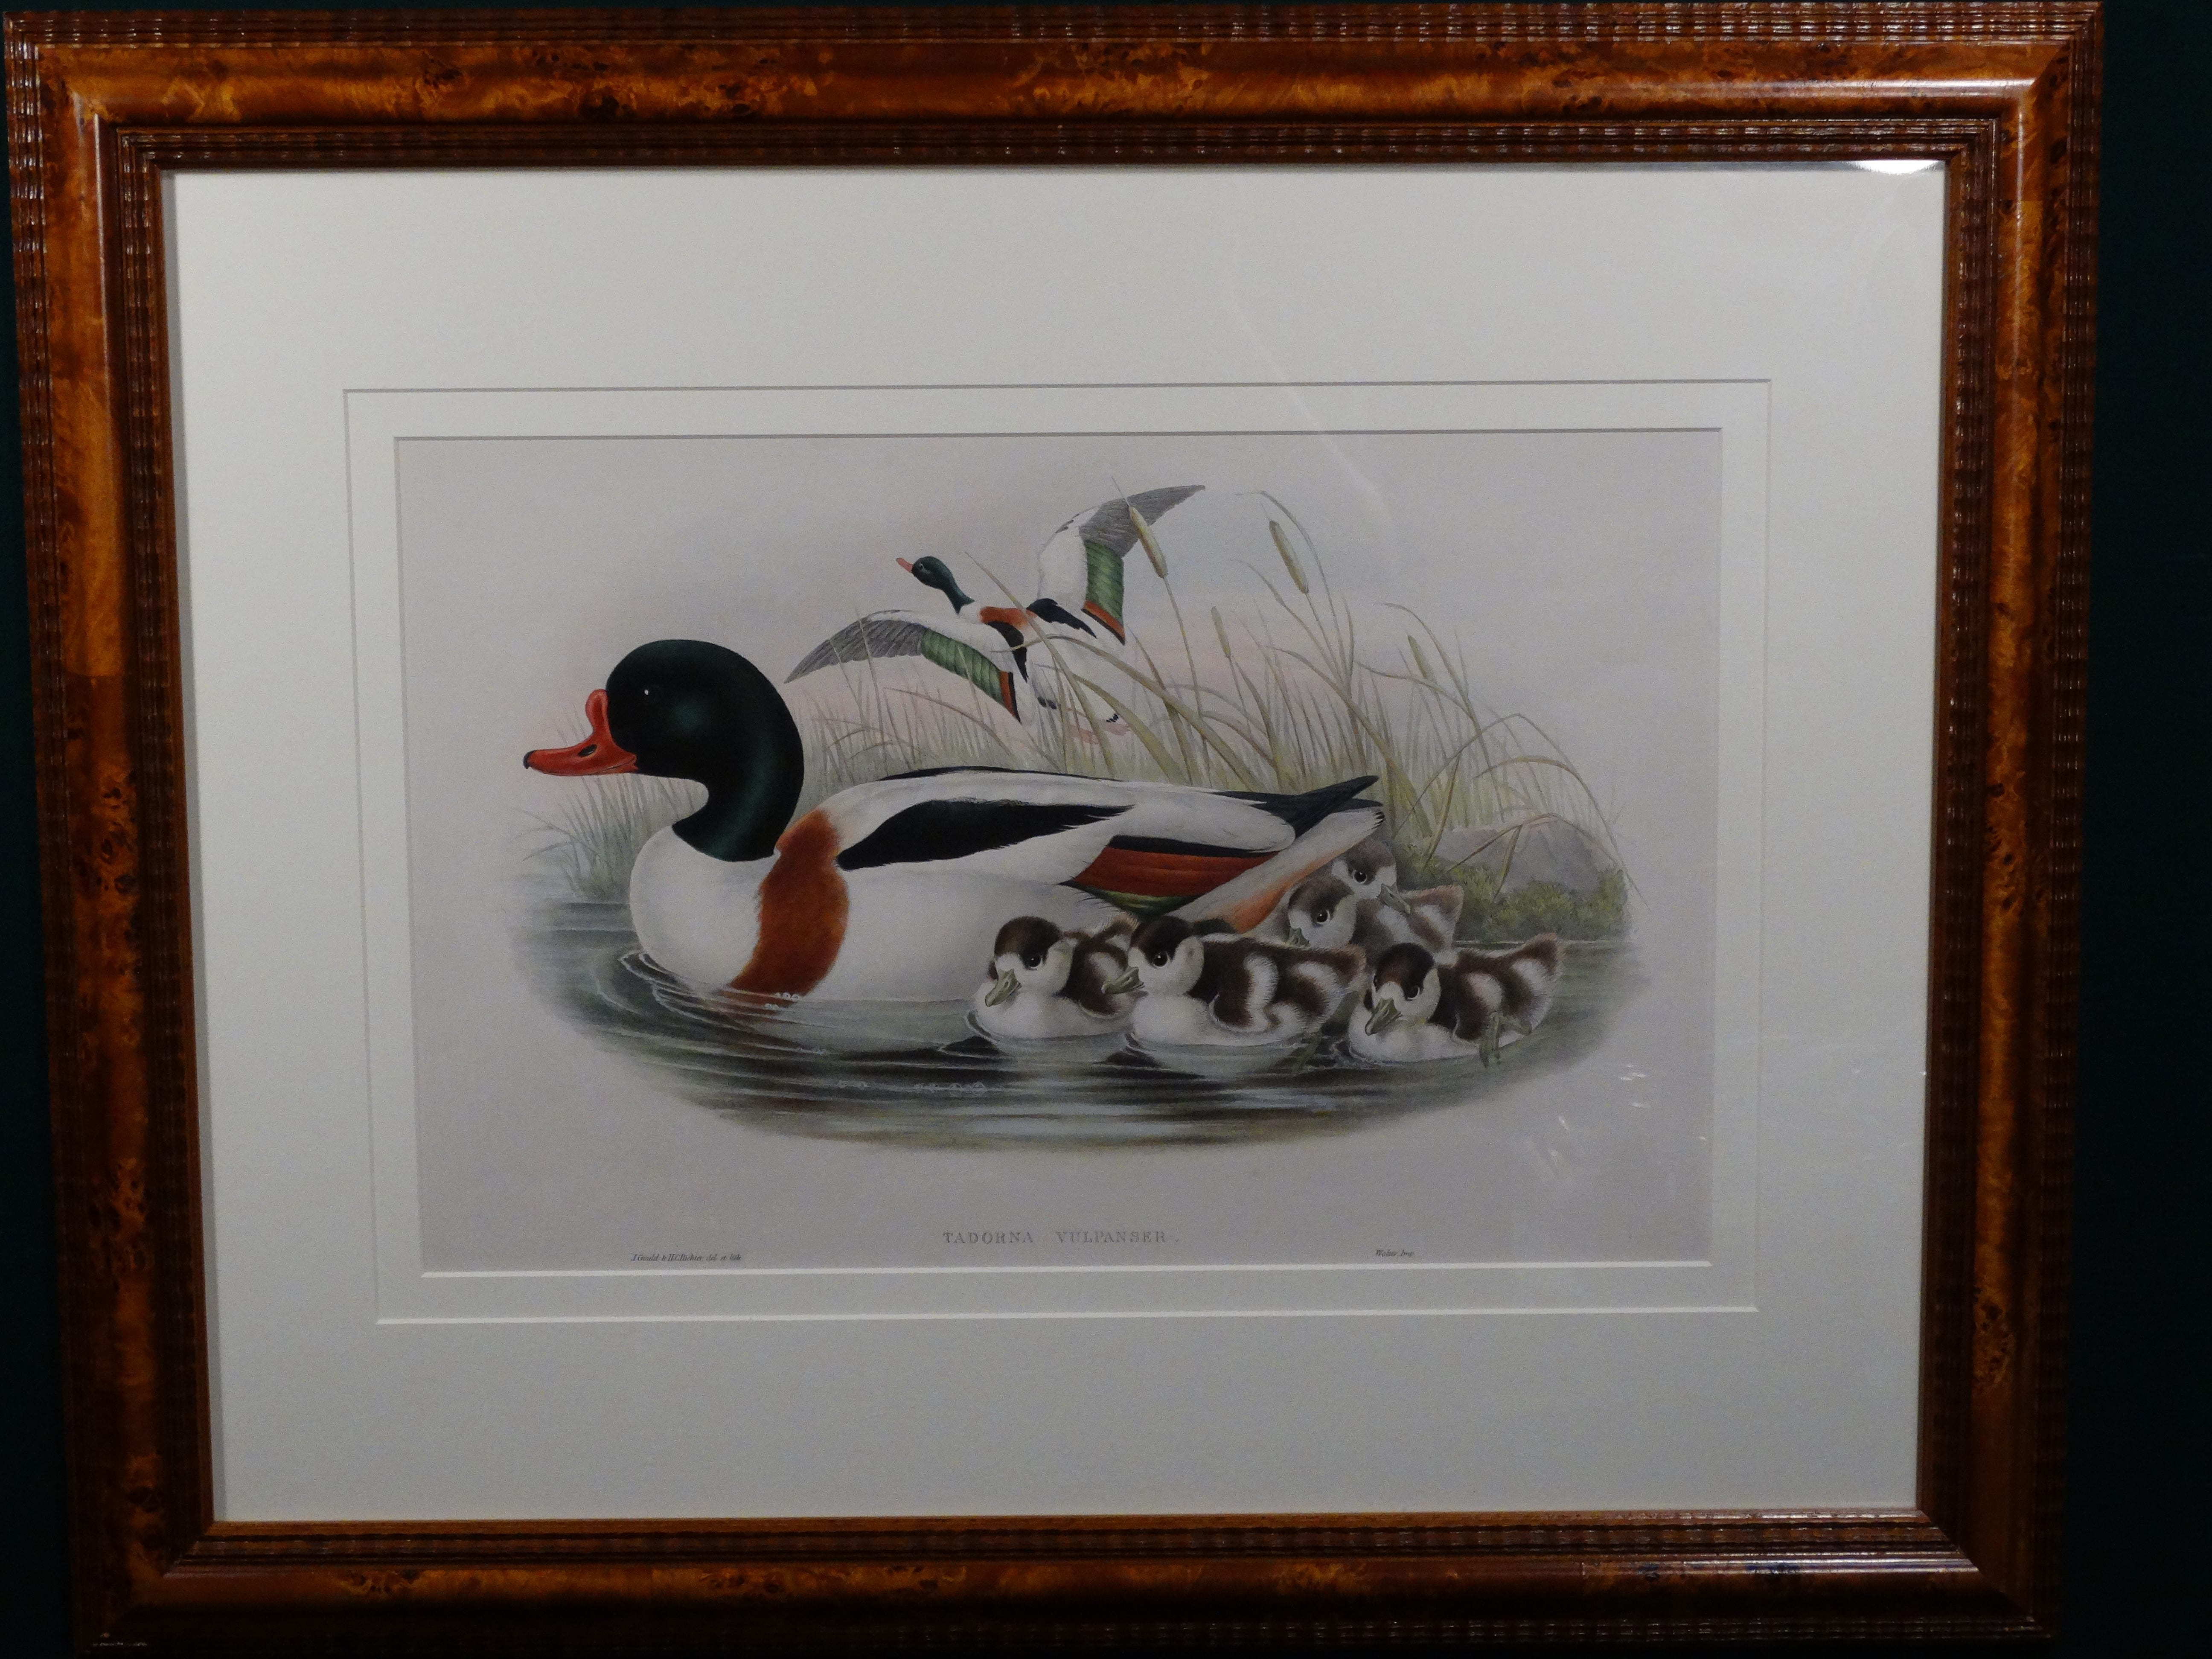 Gould Tadorna Vulpanser. Fabulous antique duck print by John Gould. Hand colored antique lithograph from Birds of Great Britain c. 1860.